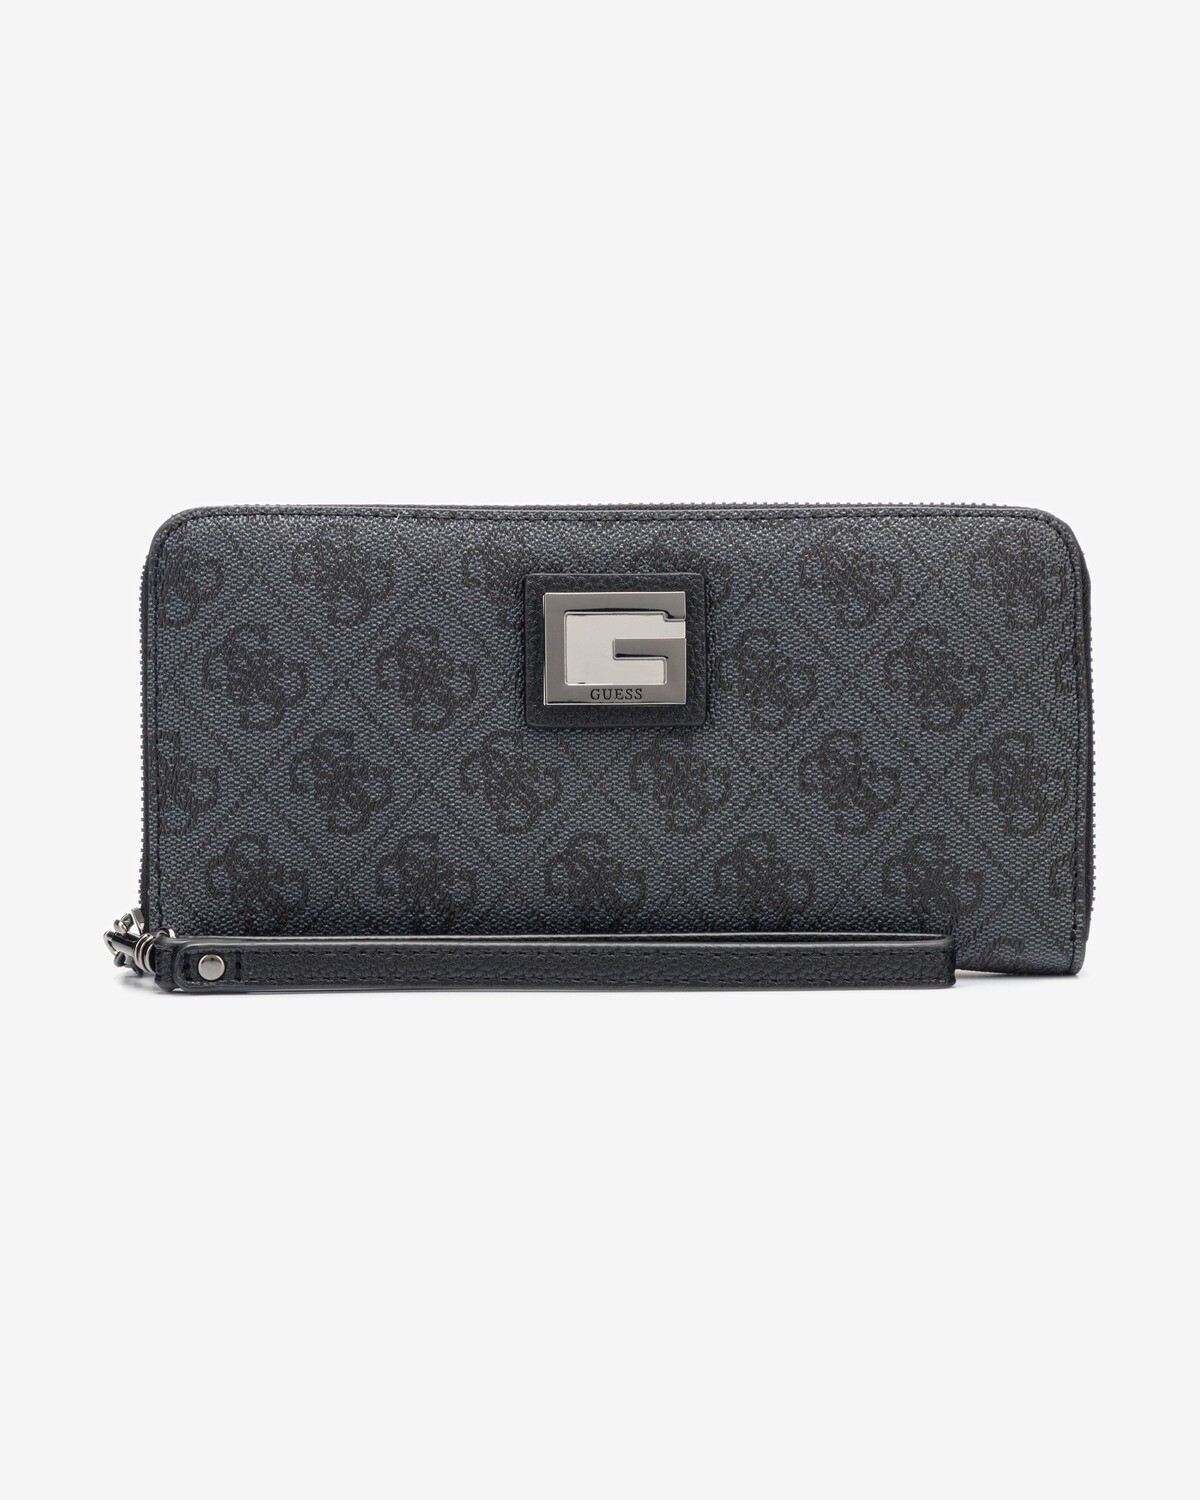 GUESS VALY COAL BLACK WALLET